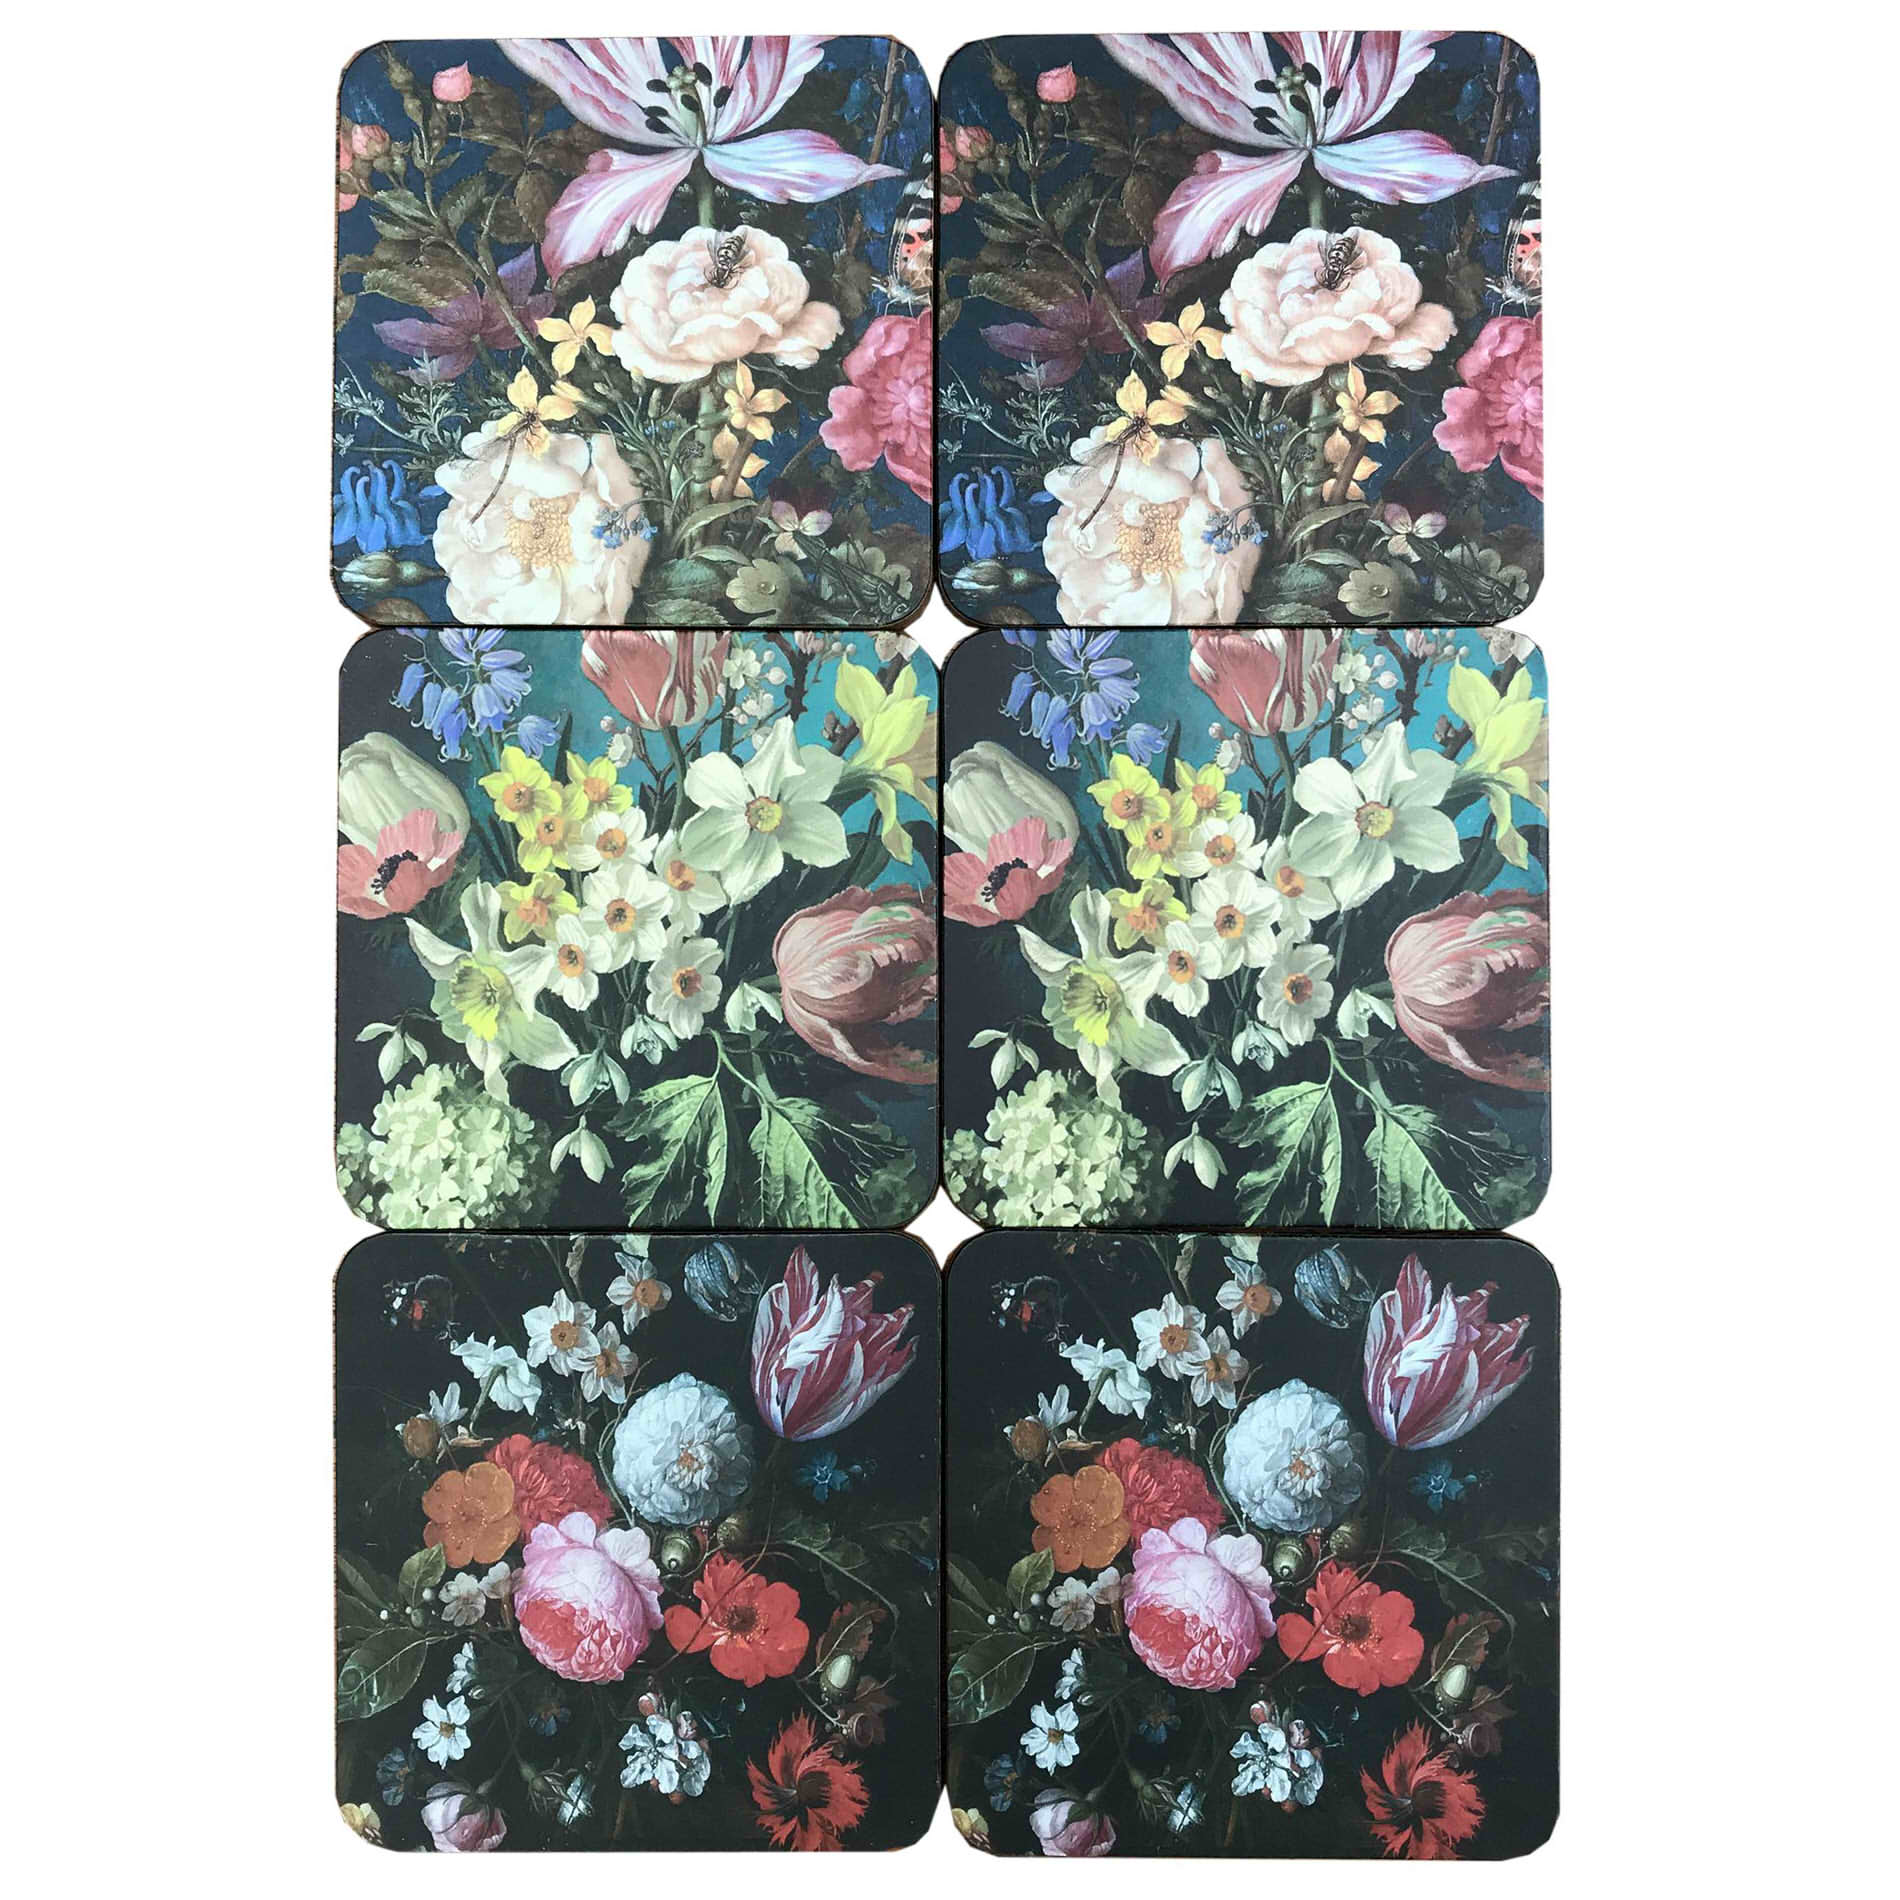 Pack Of Six Dutch Floral Drinks Coasters In Storage/Gift Box-Ornament-The Modern Home Shop